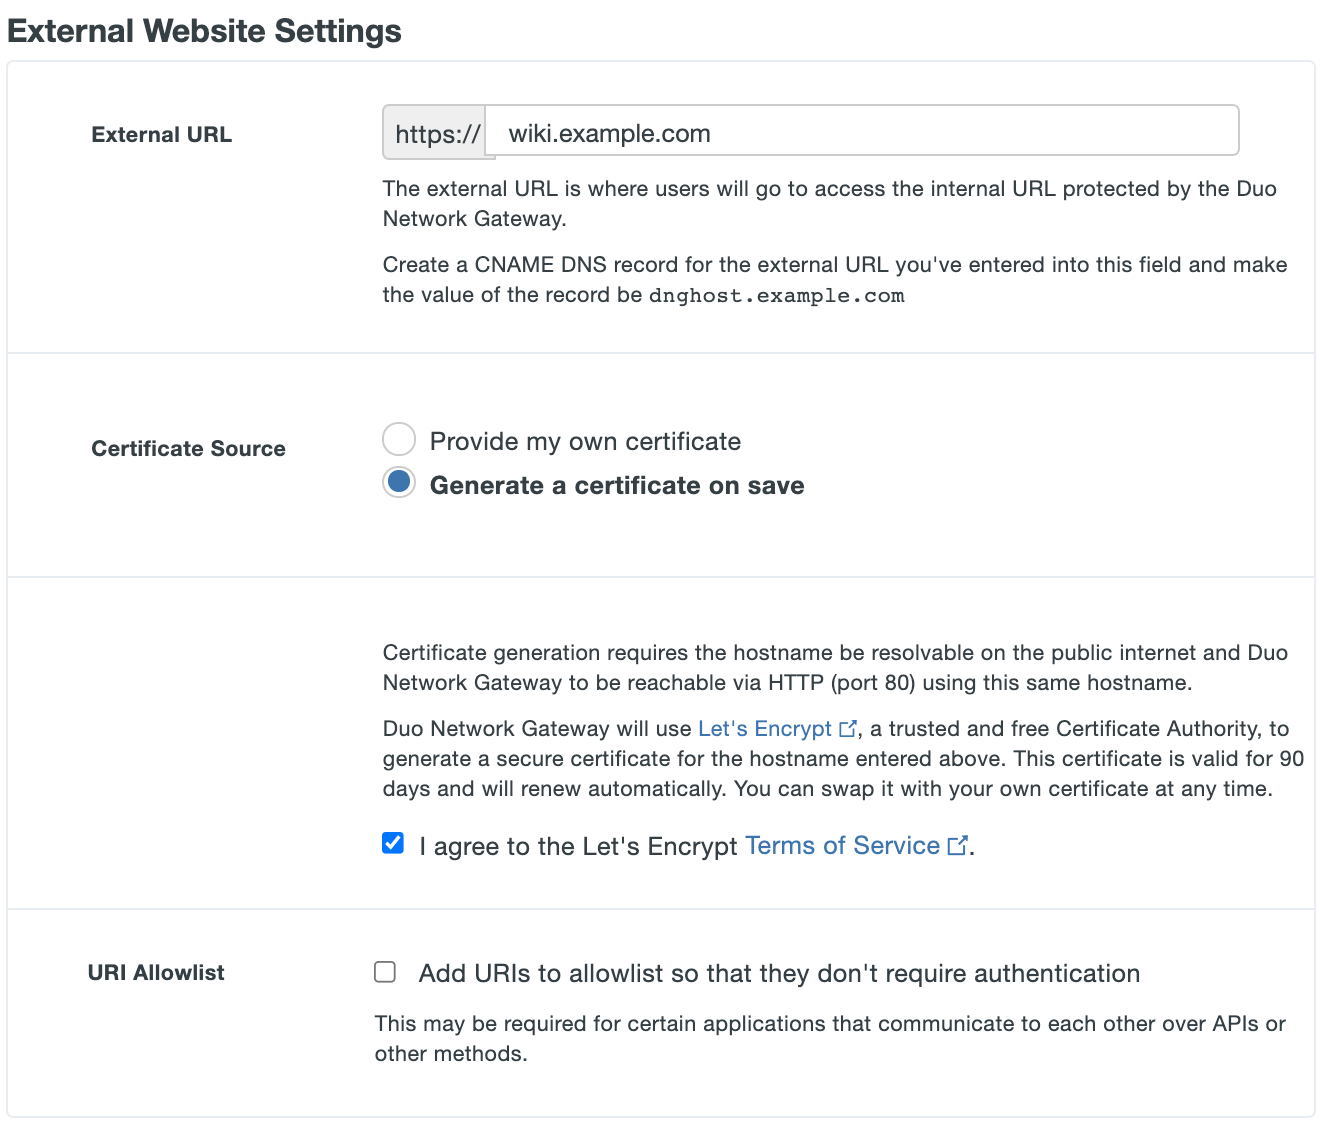 Configure external settings for Duo Network Gateway application with Let's Encrypt